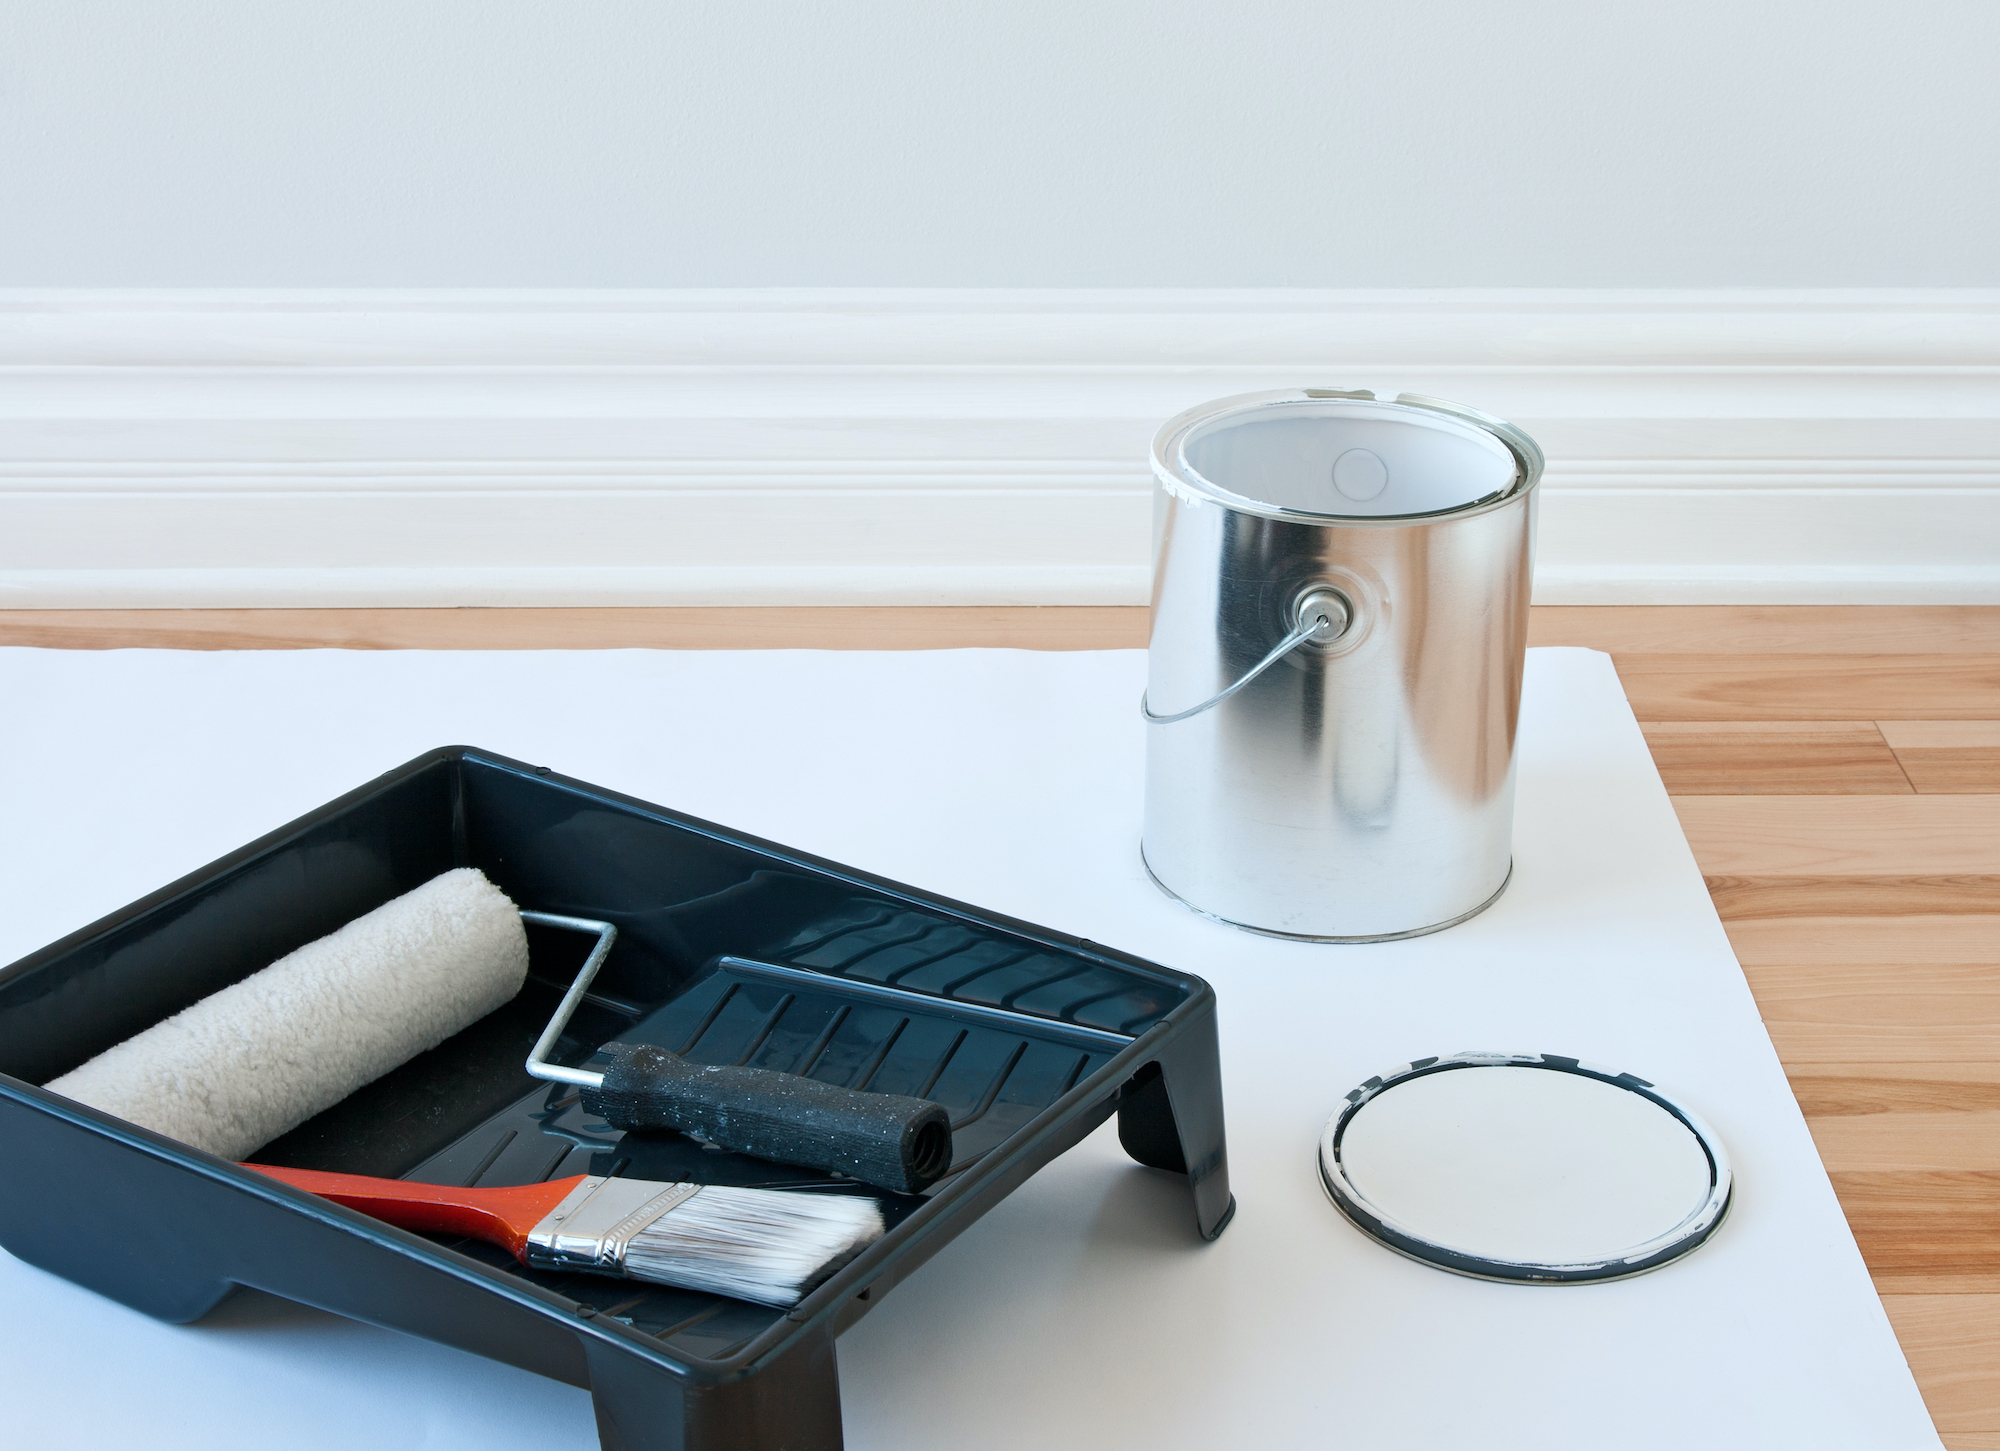 paint can and roller in tray